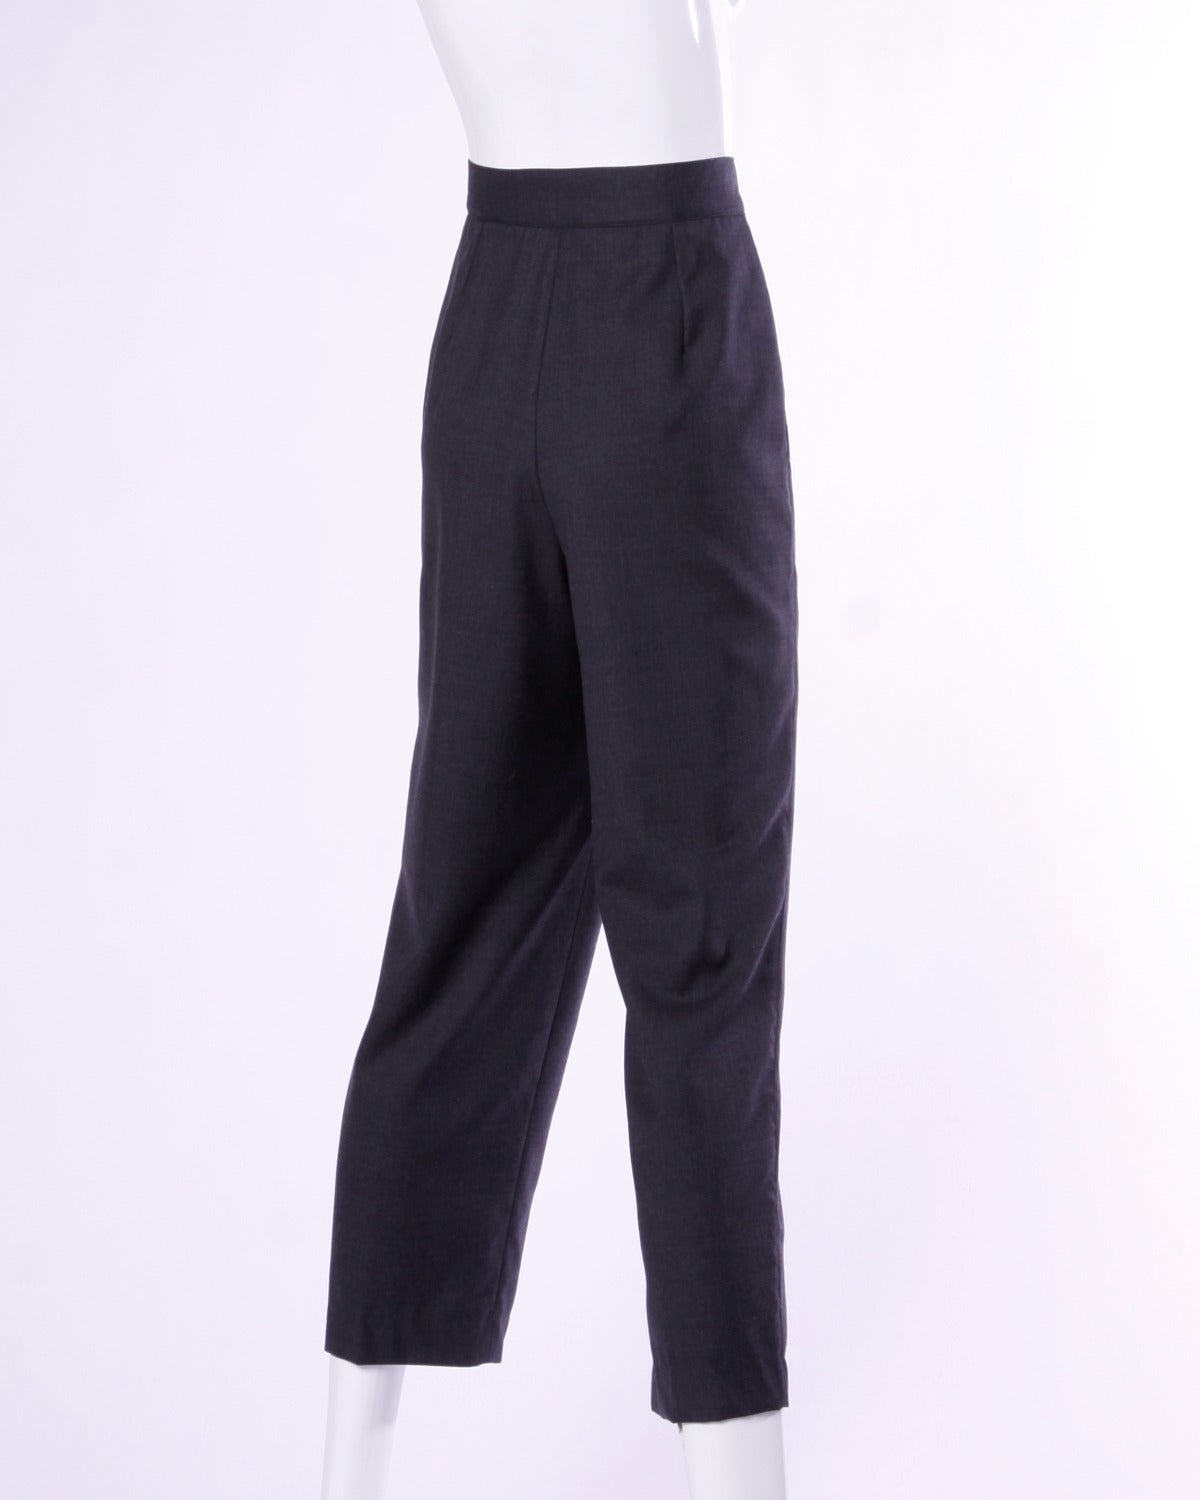 Gianni Versace Vintage 1980s 80s Gray Wool Pleated Pants or Trousers 2